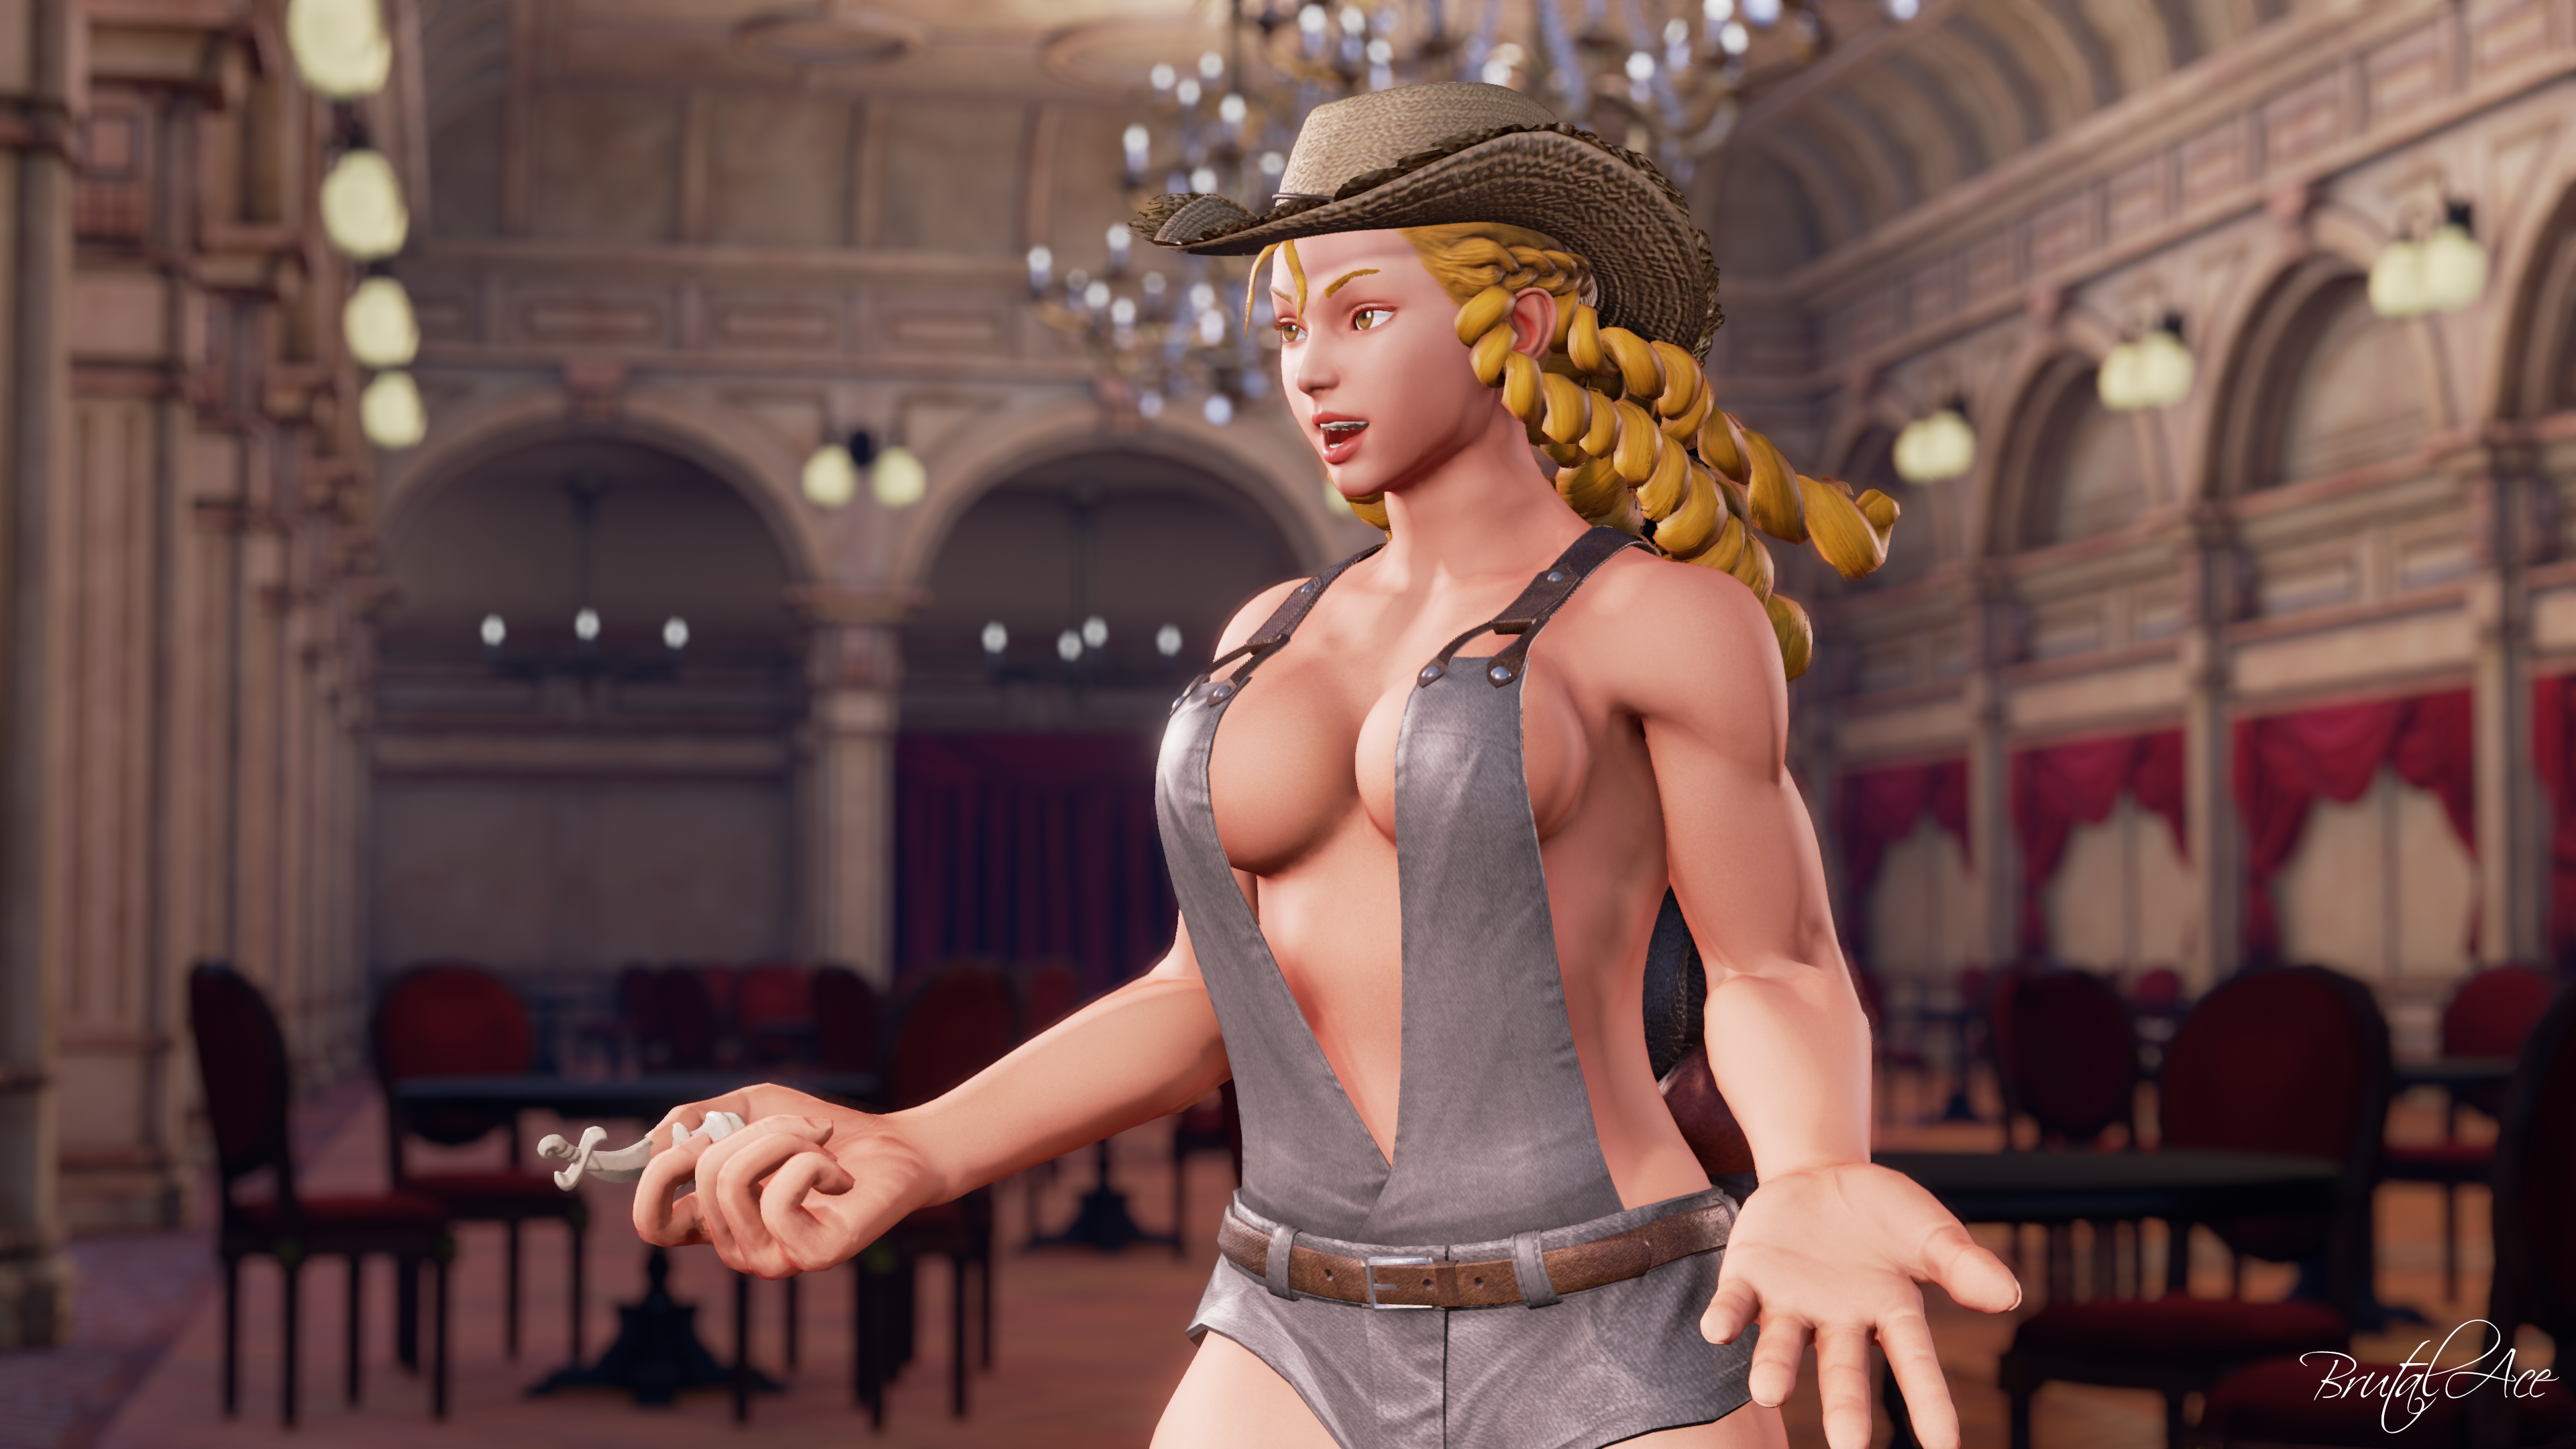 Karin Cowgirl By BrutalAce